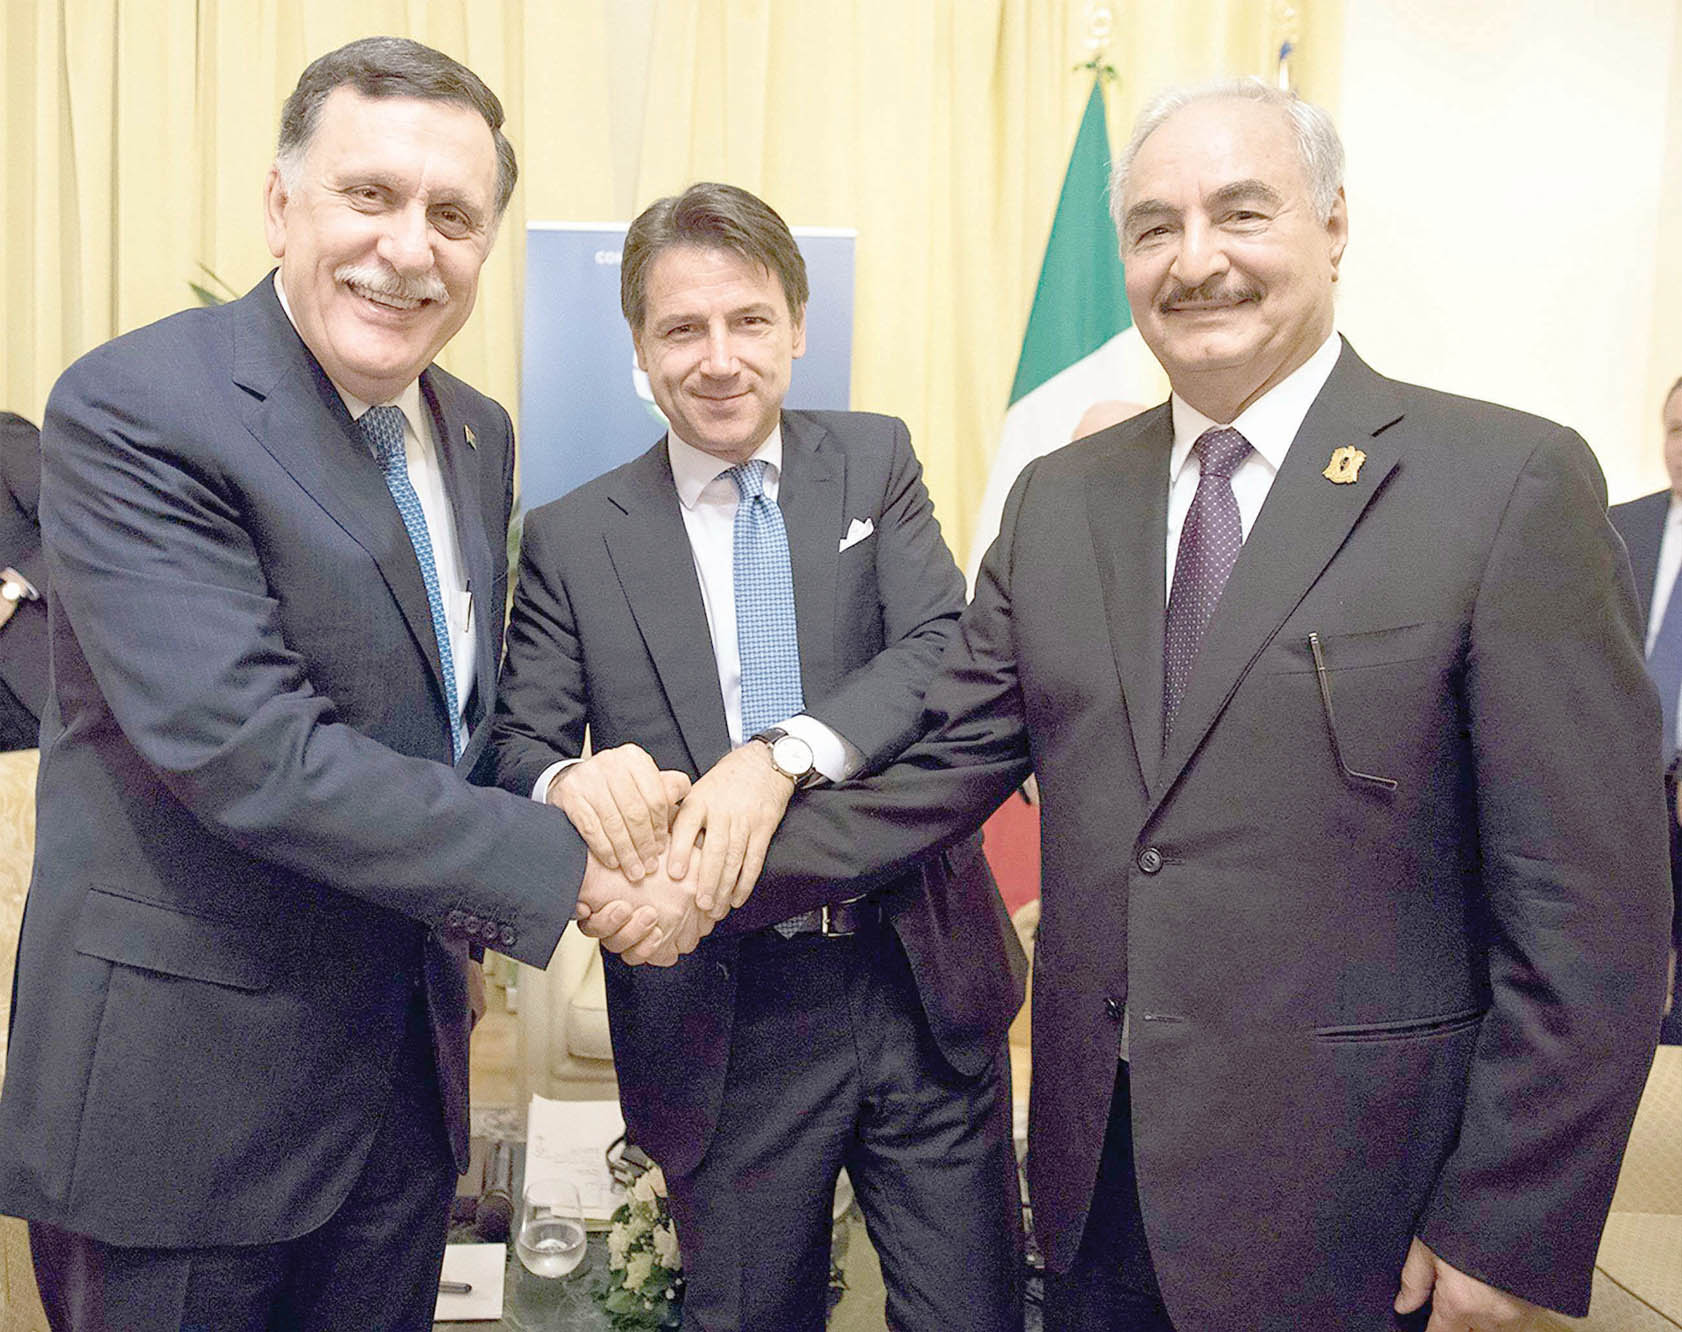 Italian Prime Minister Giuseppe Conte (C) poses with Chairman of the Presidential Council of Libya Fayez al-Sarraj (L) and Libyan Field-Marshal Khalifa Haftar on the sidelines of the Palermo conference, on November 13. (Italian Prime Minister's Press Office)